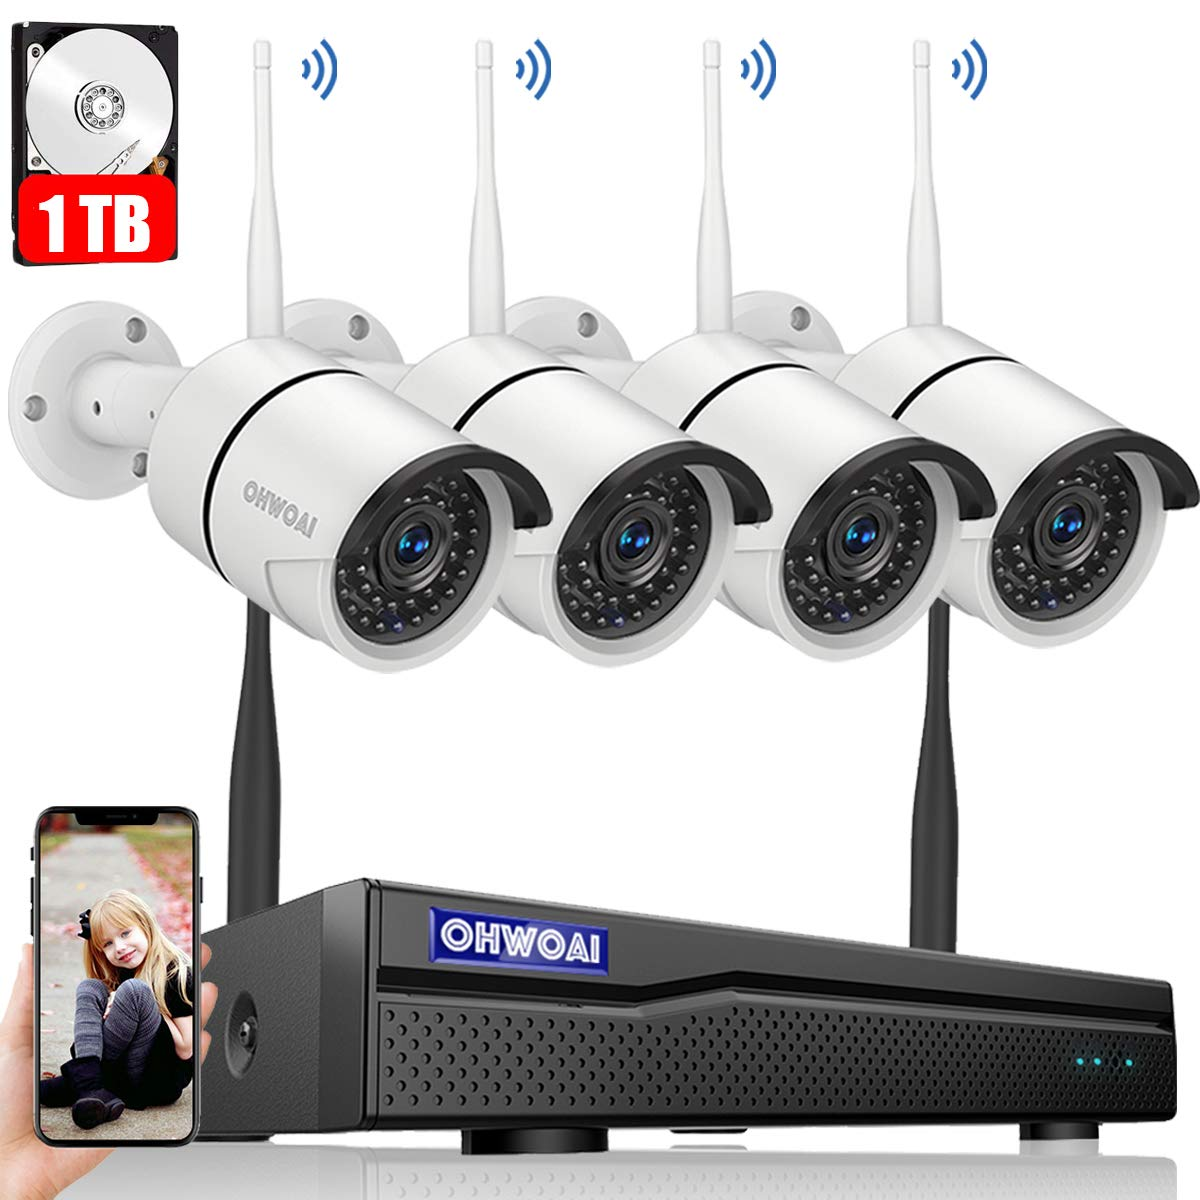 【8CH Expandable】Security Camera System Wireless Outdoor, 8 Channel 1080P NVR With 1TB Hard Drive , 4Pcs 720P CCTV Cameras For Home,OHWOAI Surveillance Video security System,Outdoor Wireless IP Cameras 61NIQr4bqdL